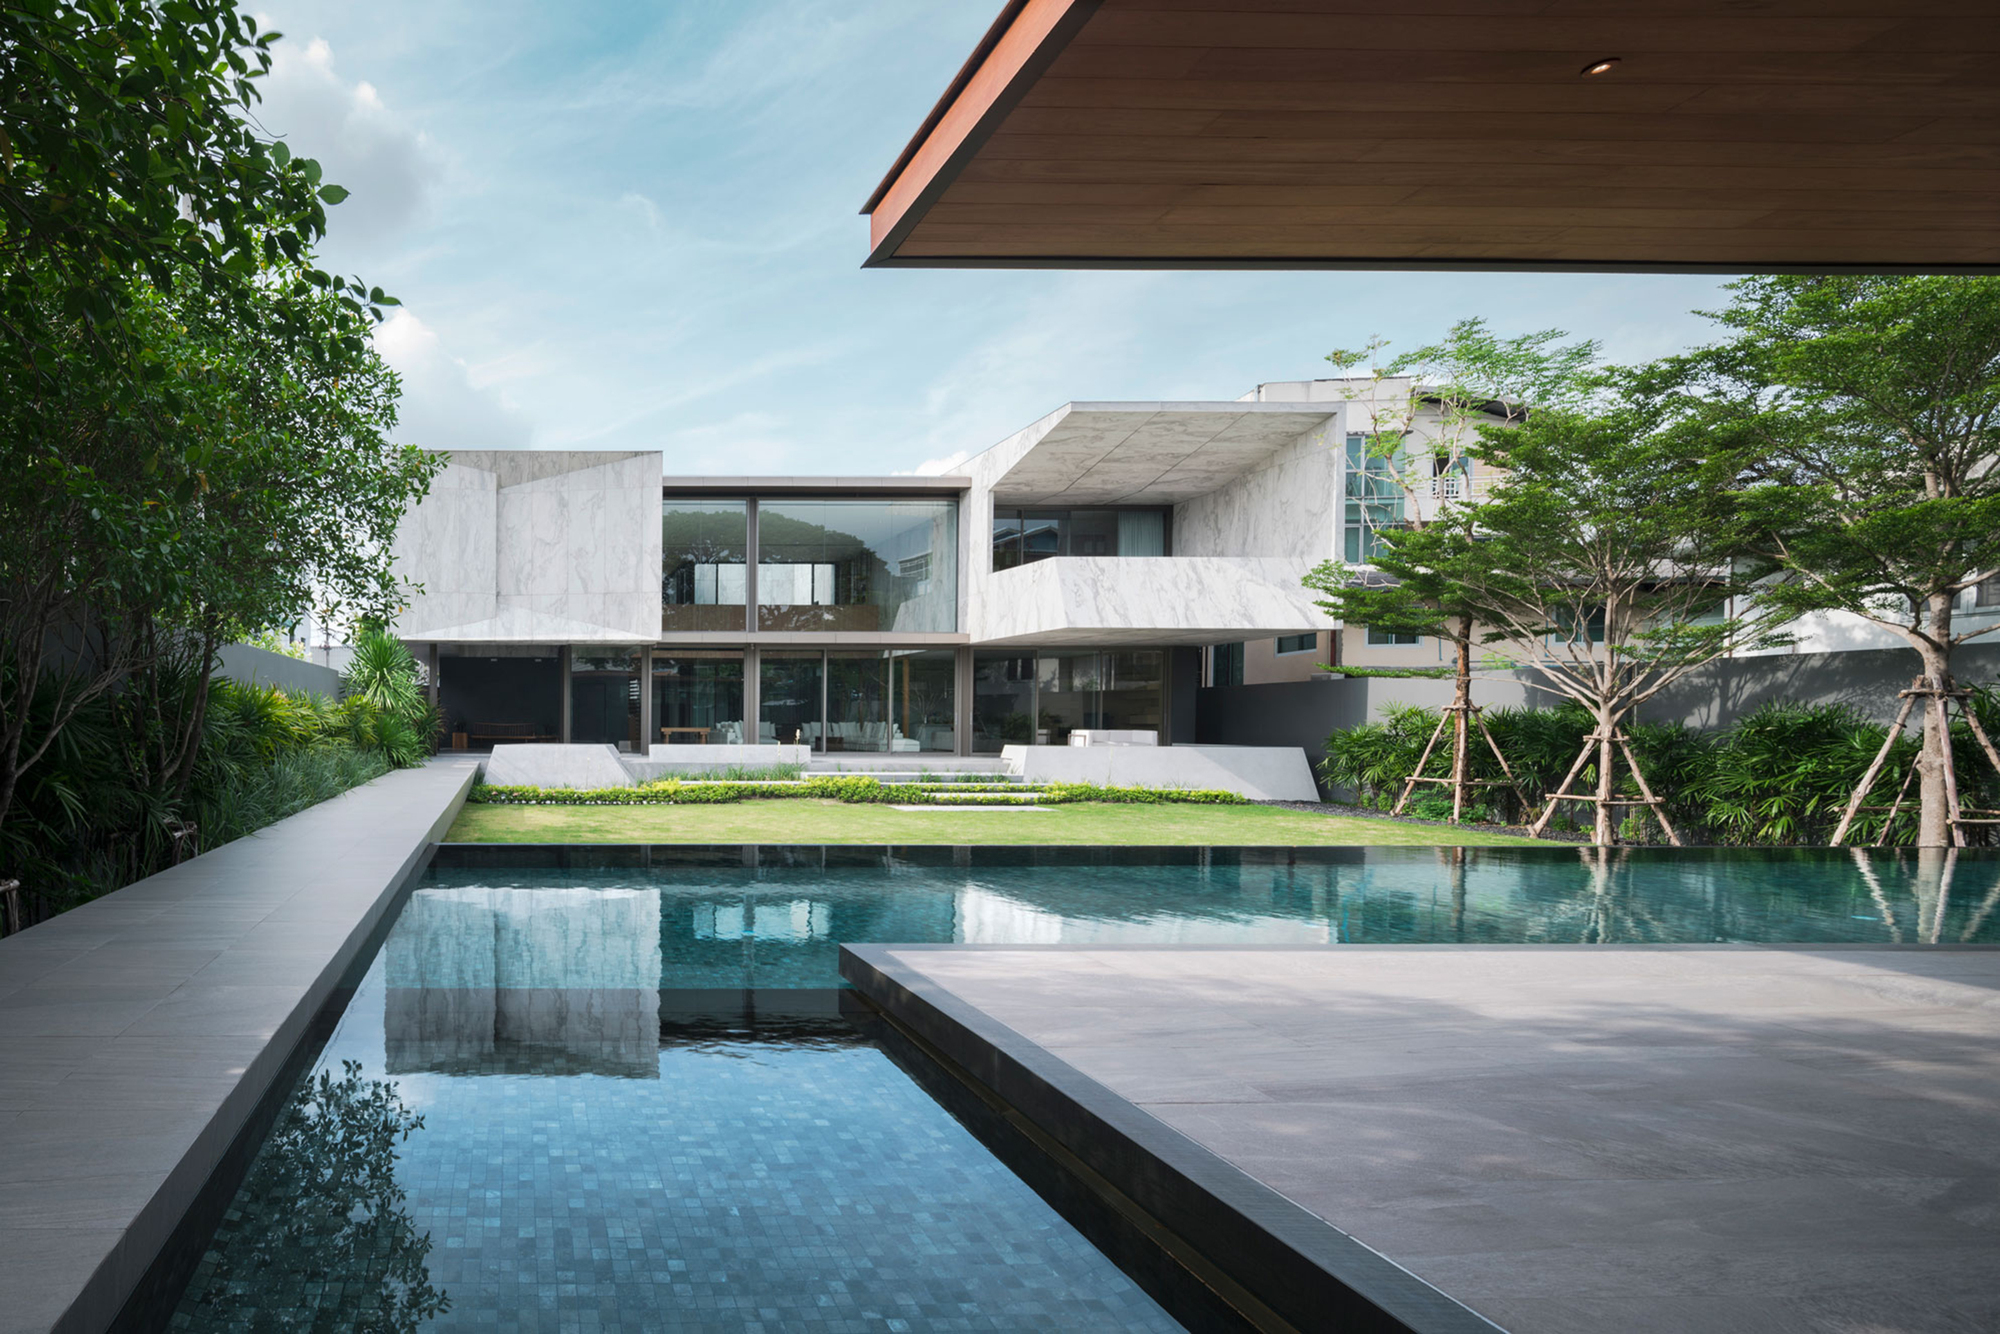 gallery of marble house / openbox architects - 3